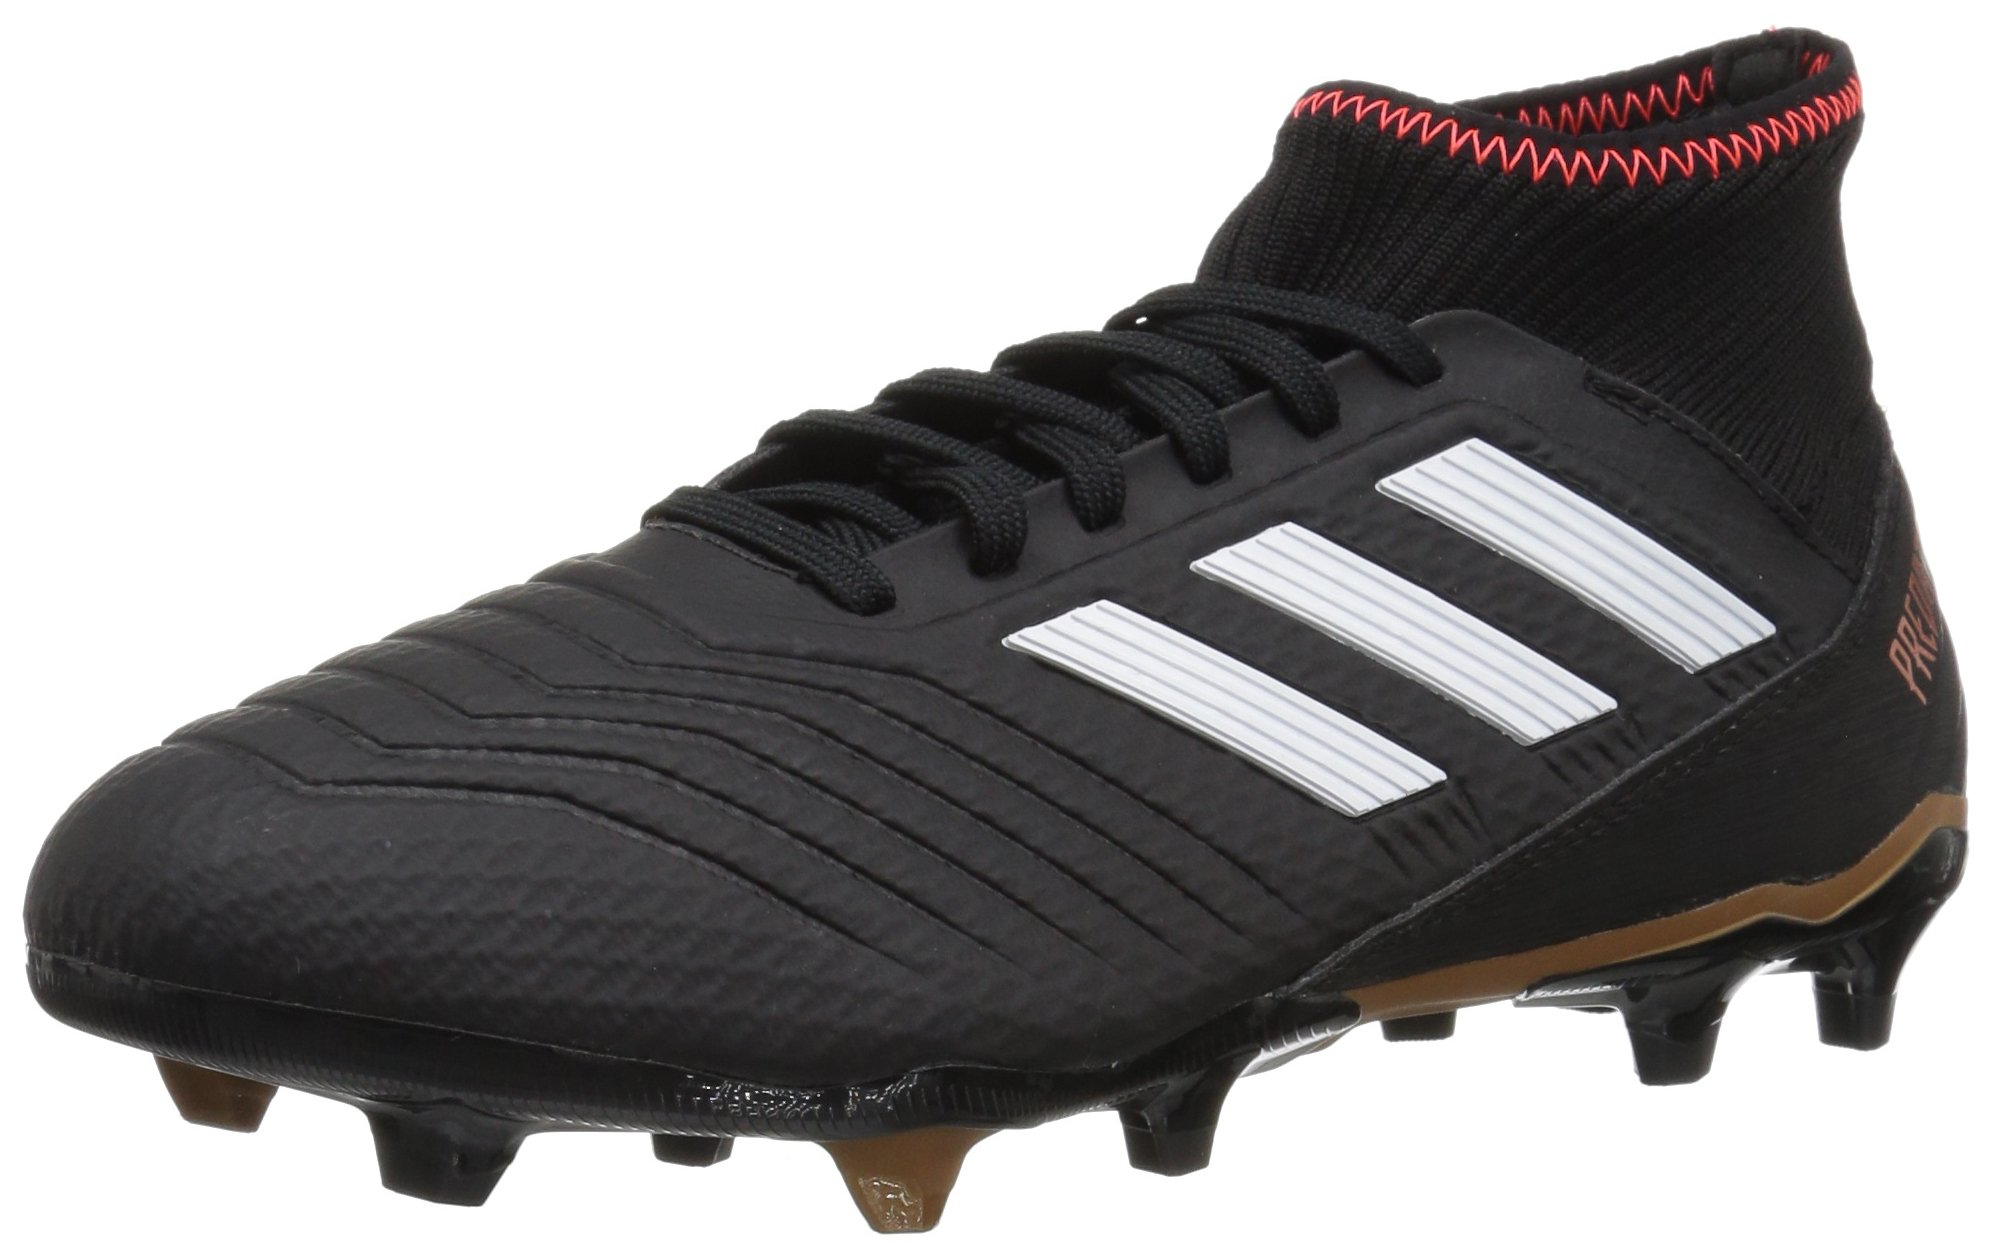 adidas Ace 18.3 FG Soccer Shoe, Core Black/White/Solar Red, 9 M US